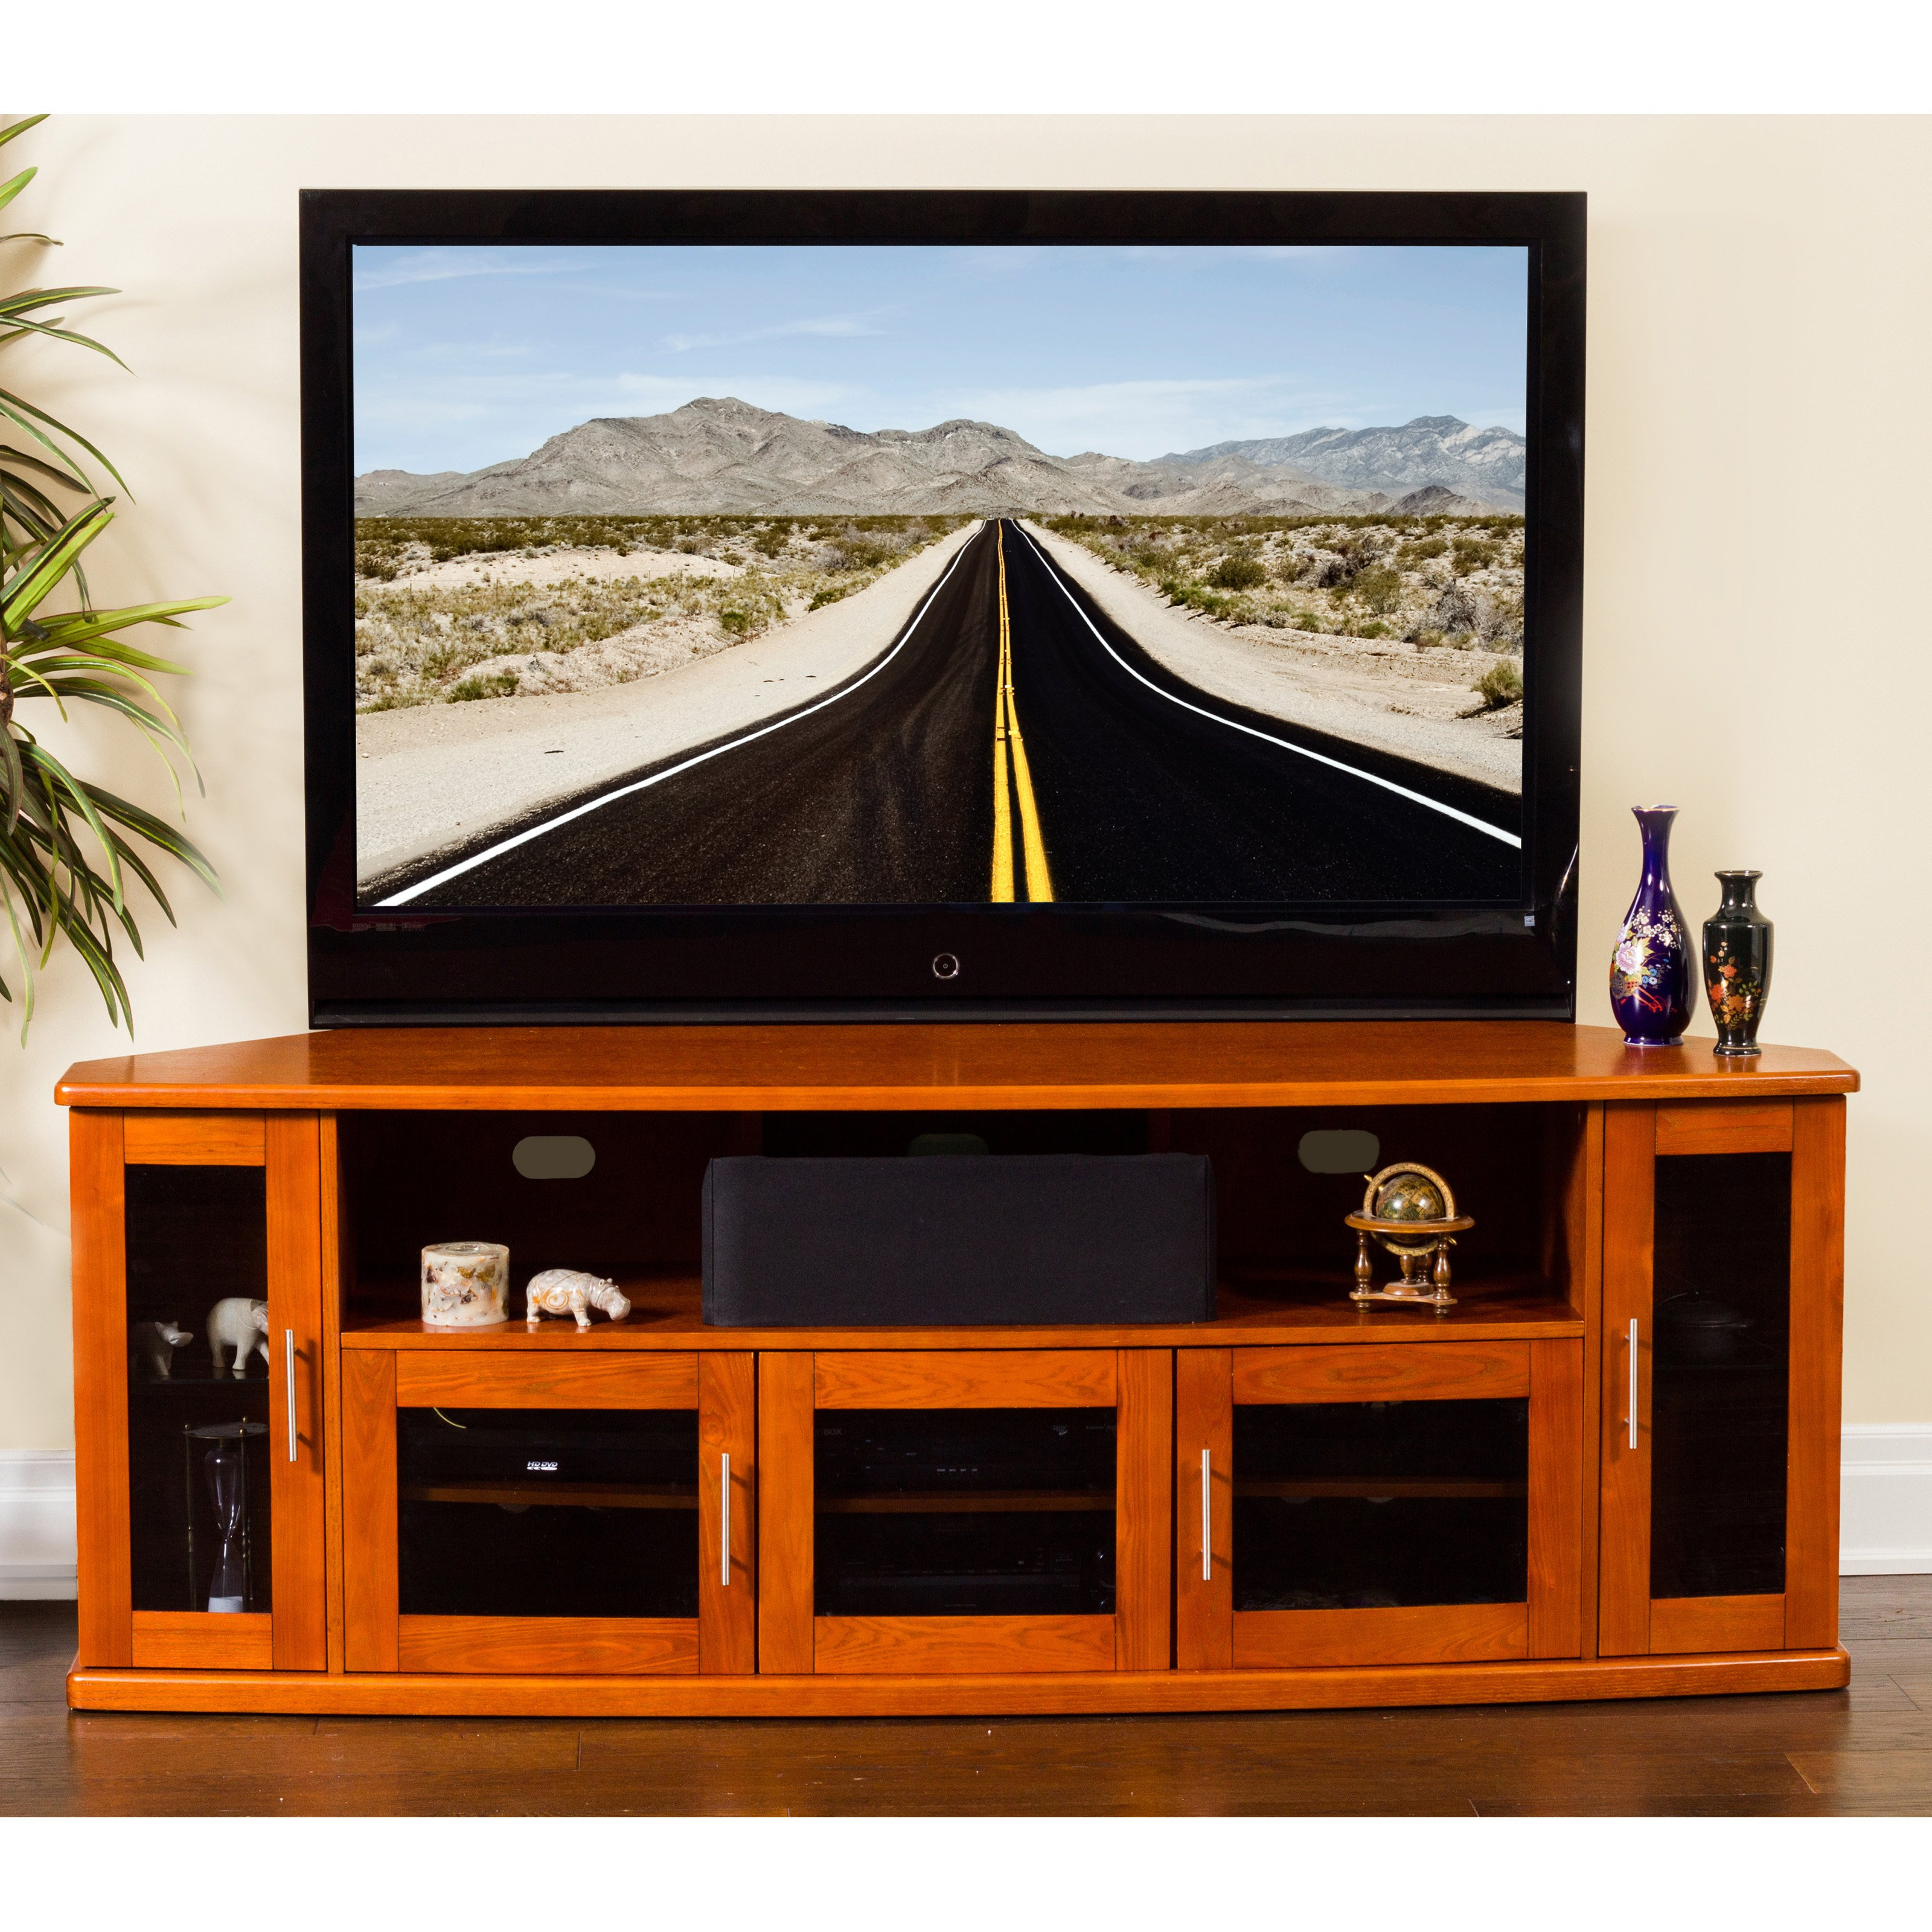 Plateau Newport 80 in. Corner Wood TV Stand - Walnut Finish